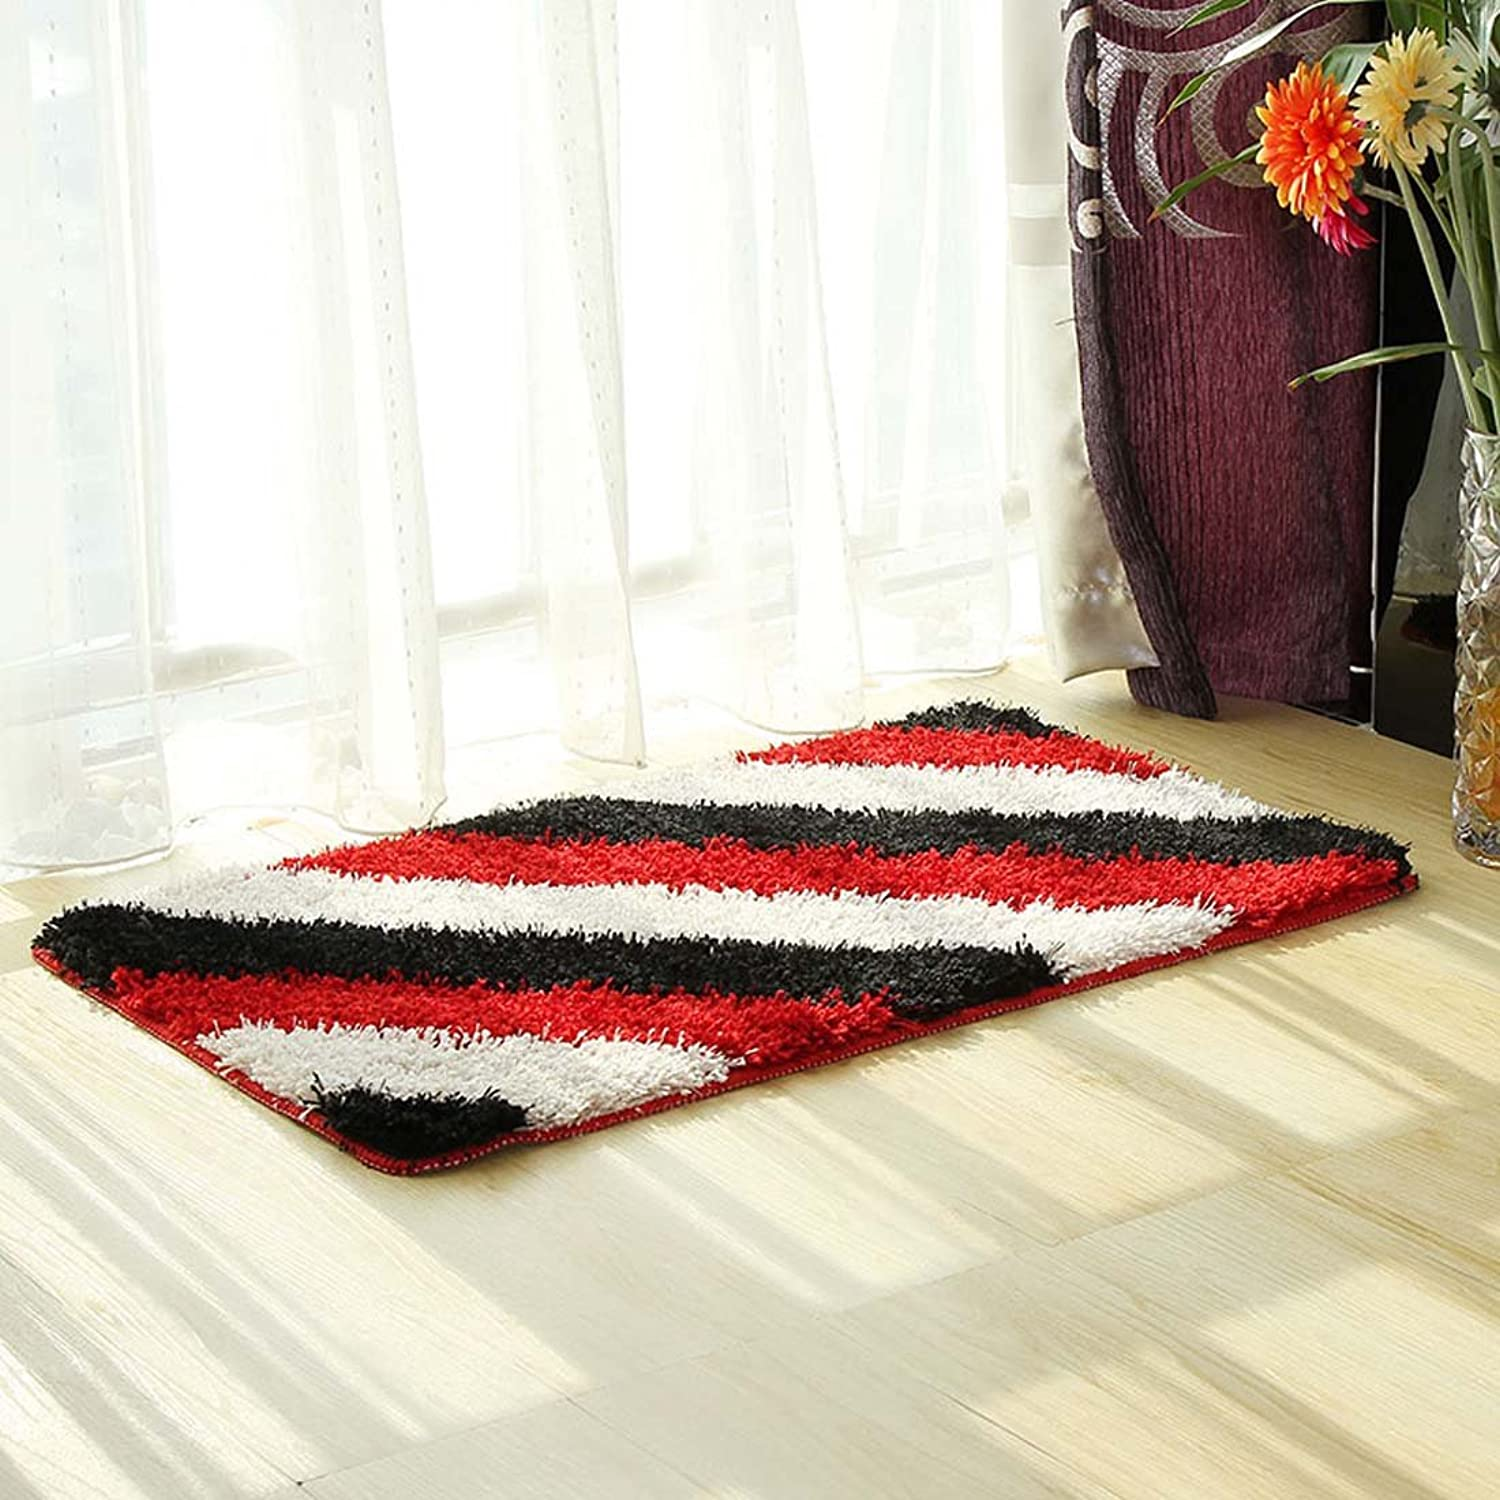 Babe MAPS Indoor Outdoor Doormat Entrance Welcome Mat Absorbent Runner Inserts Non Slip Entry Rug Funny Microfiber Stripes Pattern Red Home Decor for Inside shoes Scraper Floor Carpet 23 x35